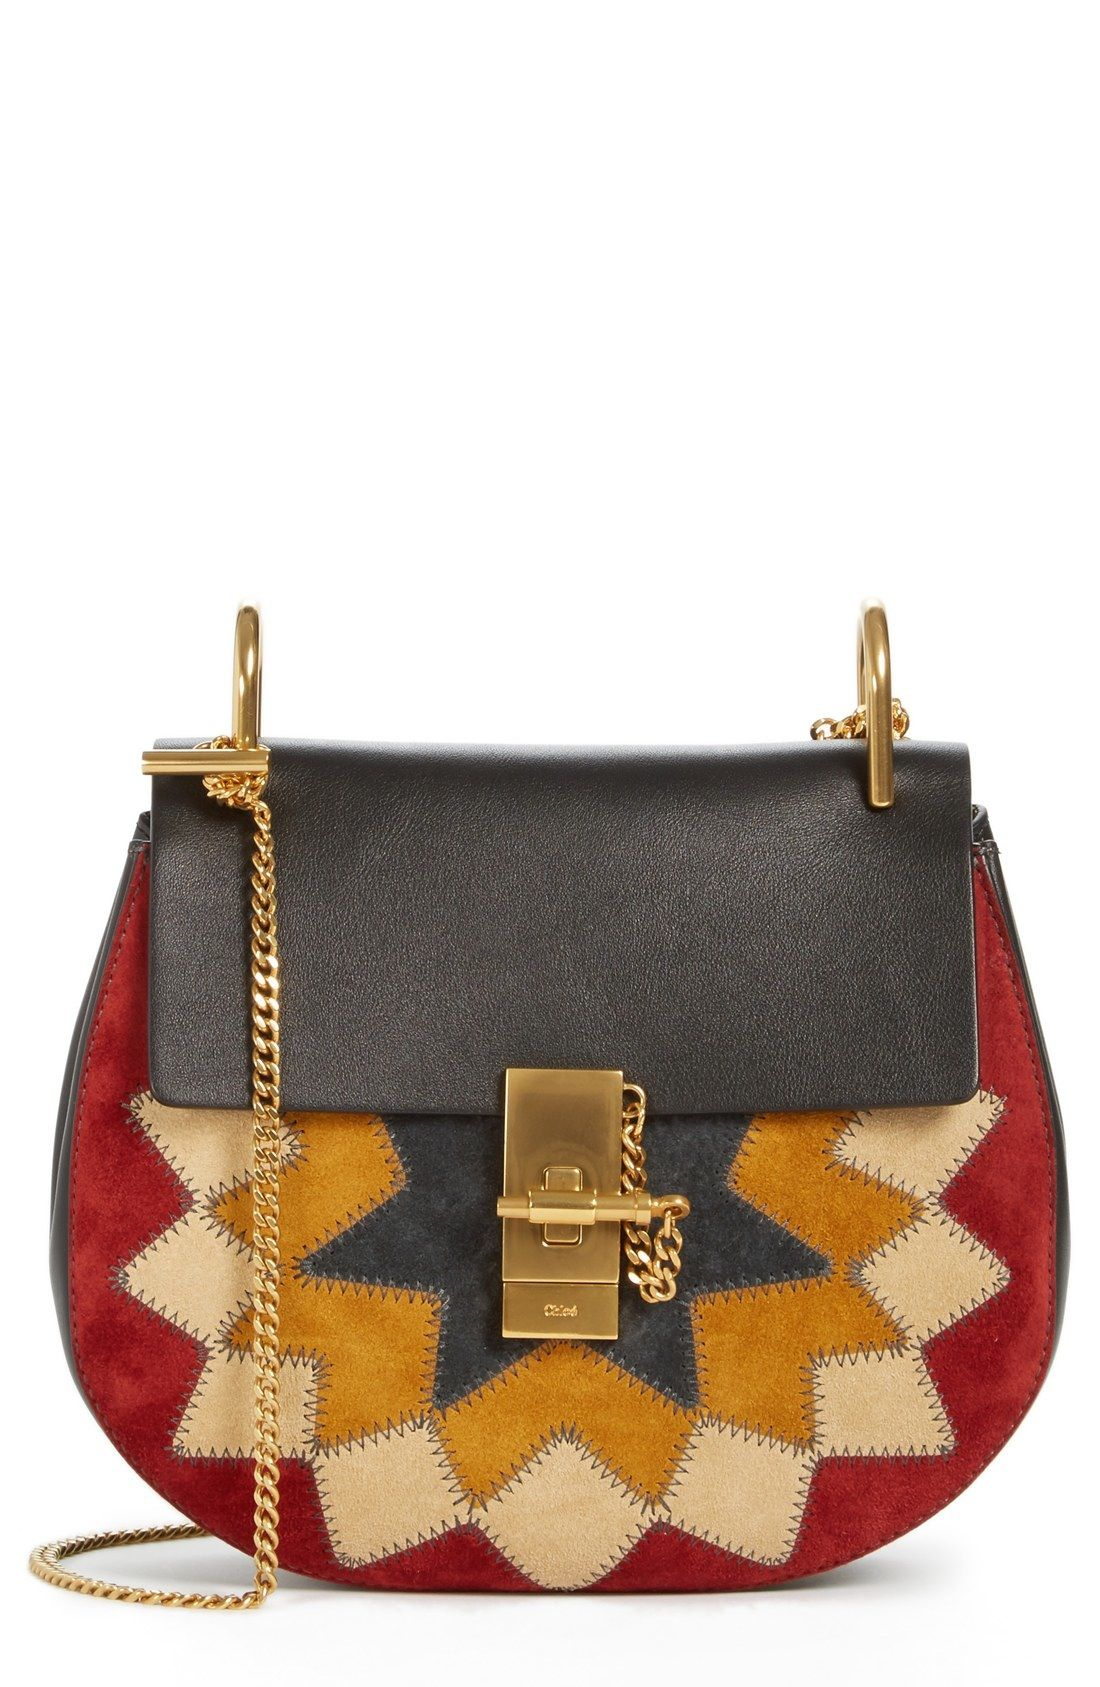 Chloé 'Drew Wonder Woman' Patchwork Suede   Exquisite Bags in 2019   Leather shoulder bag. Leather crossbody bag. Crossbody saddle bag